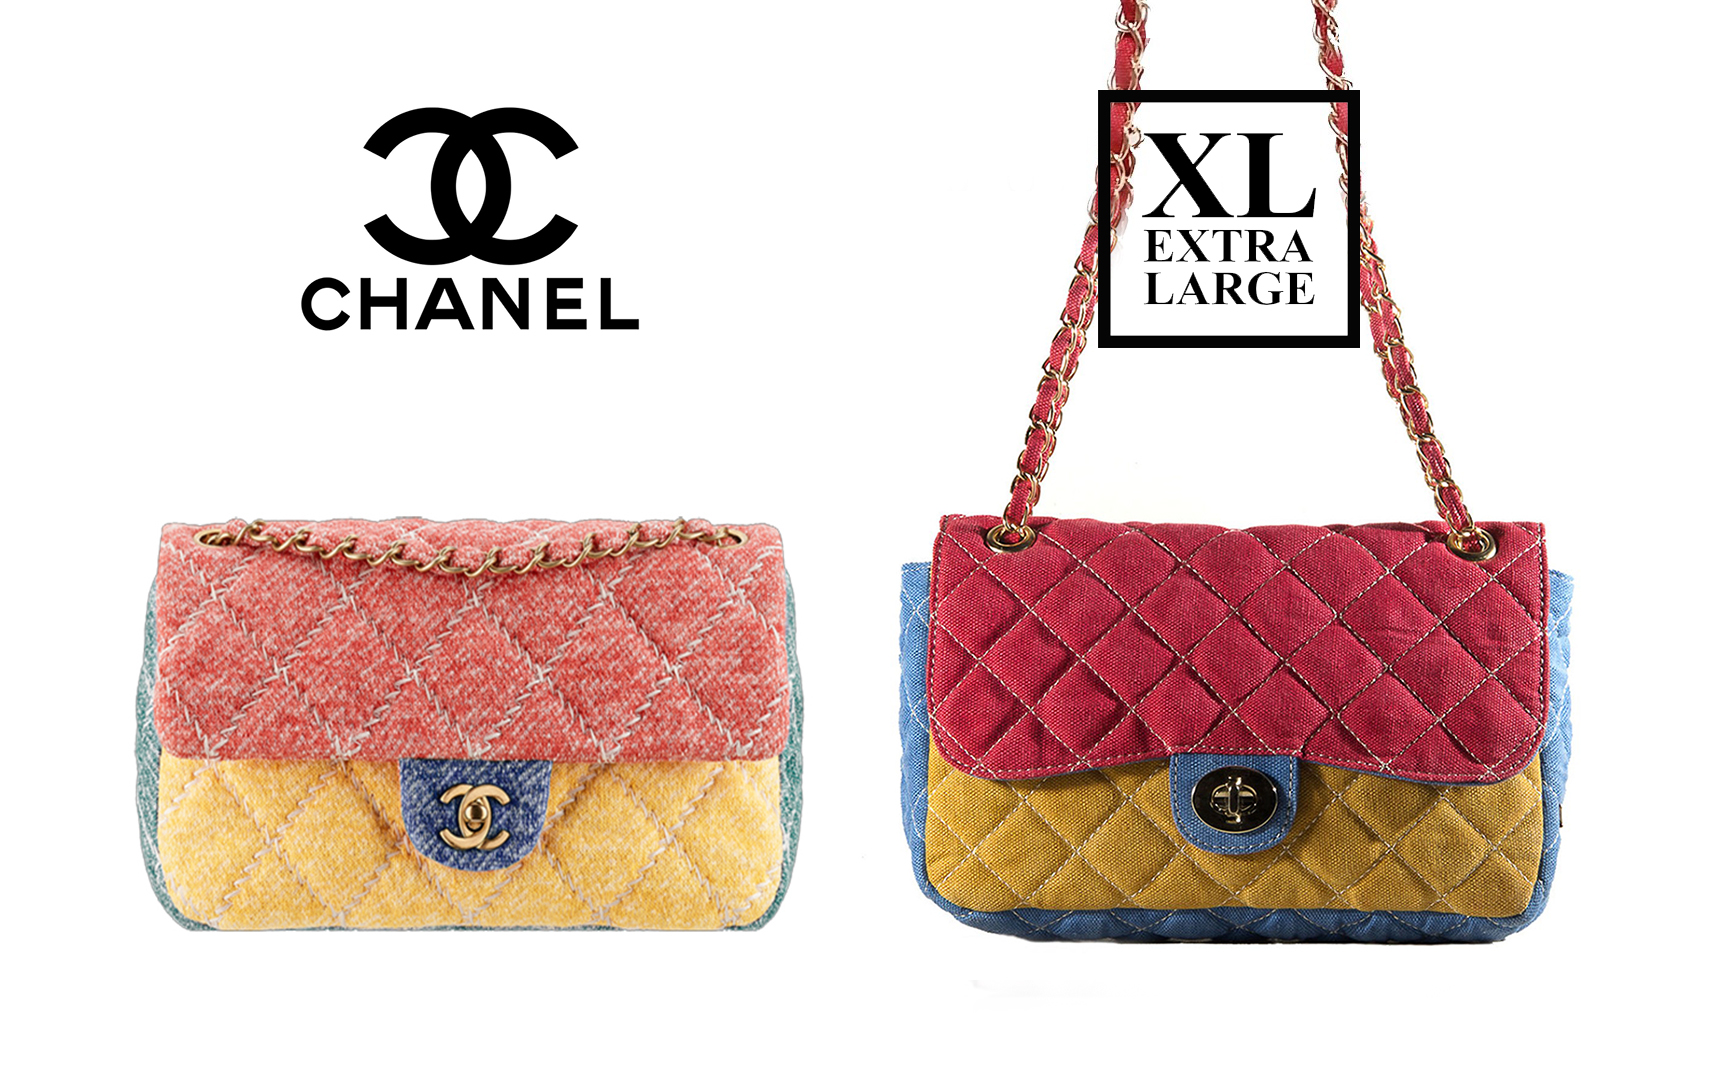 Copias_Argentinas_Inspiraciones_Chanel_255_Bag_XL_Cartera_Multicolor.jpg